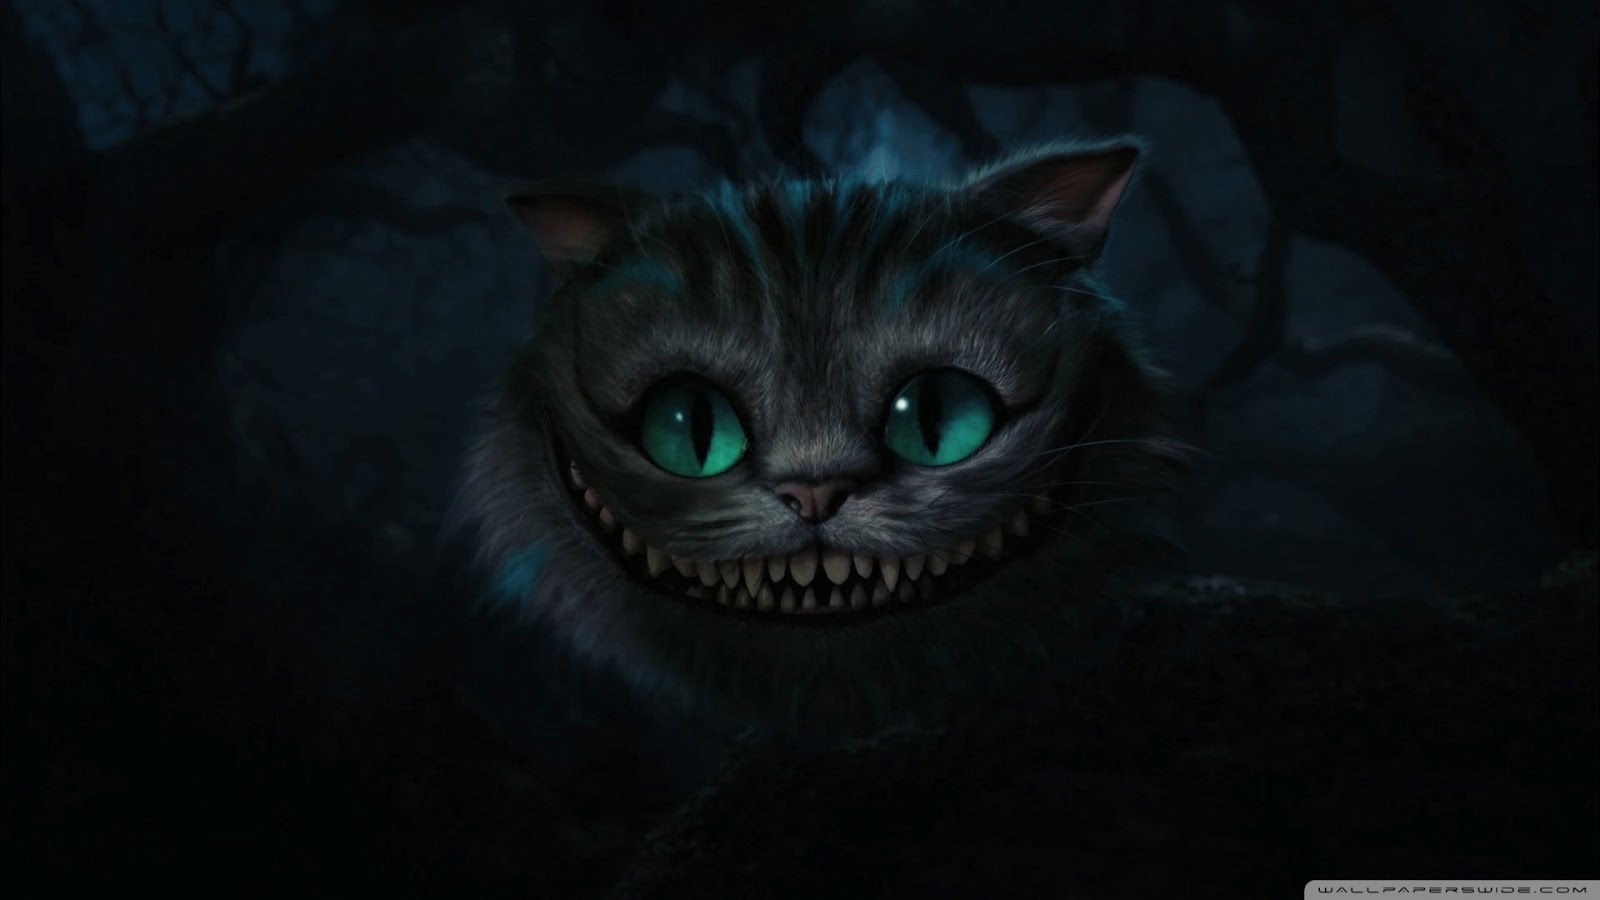 cheshire-cat-alice-in-wonderland-1920x1080-×-wallpaper-wp3803714